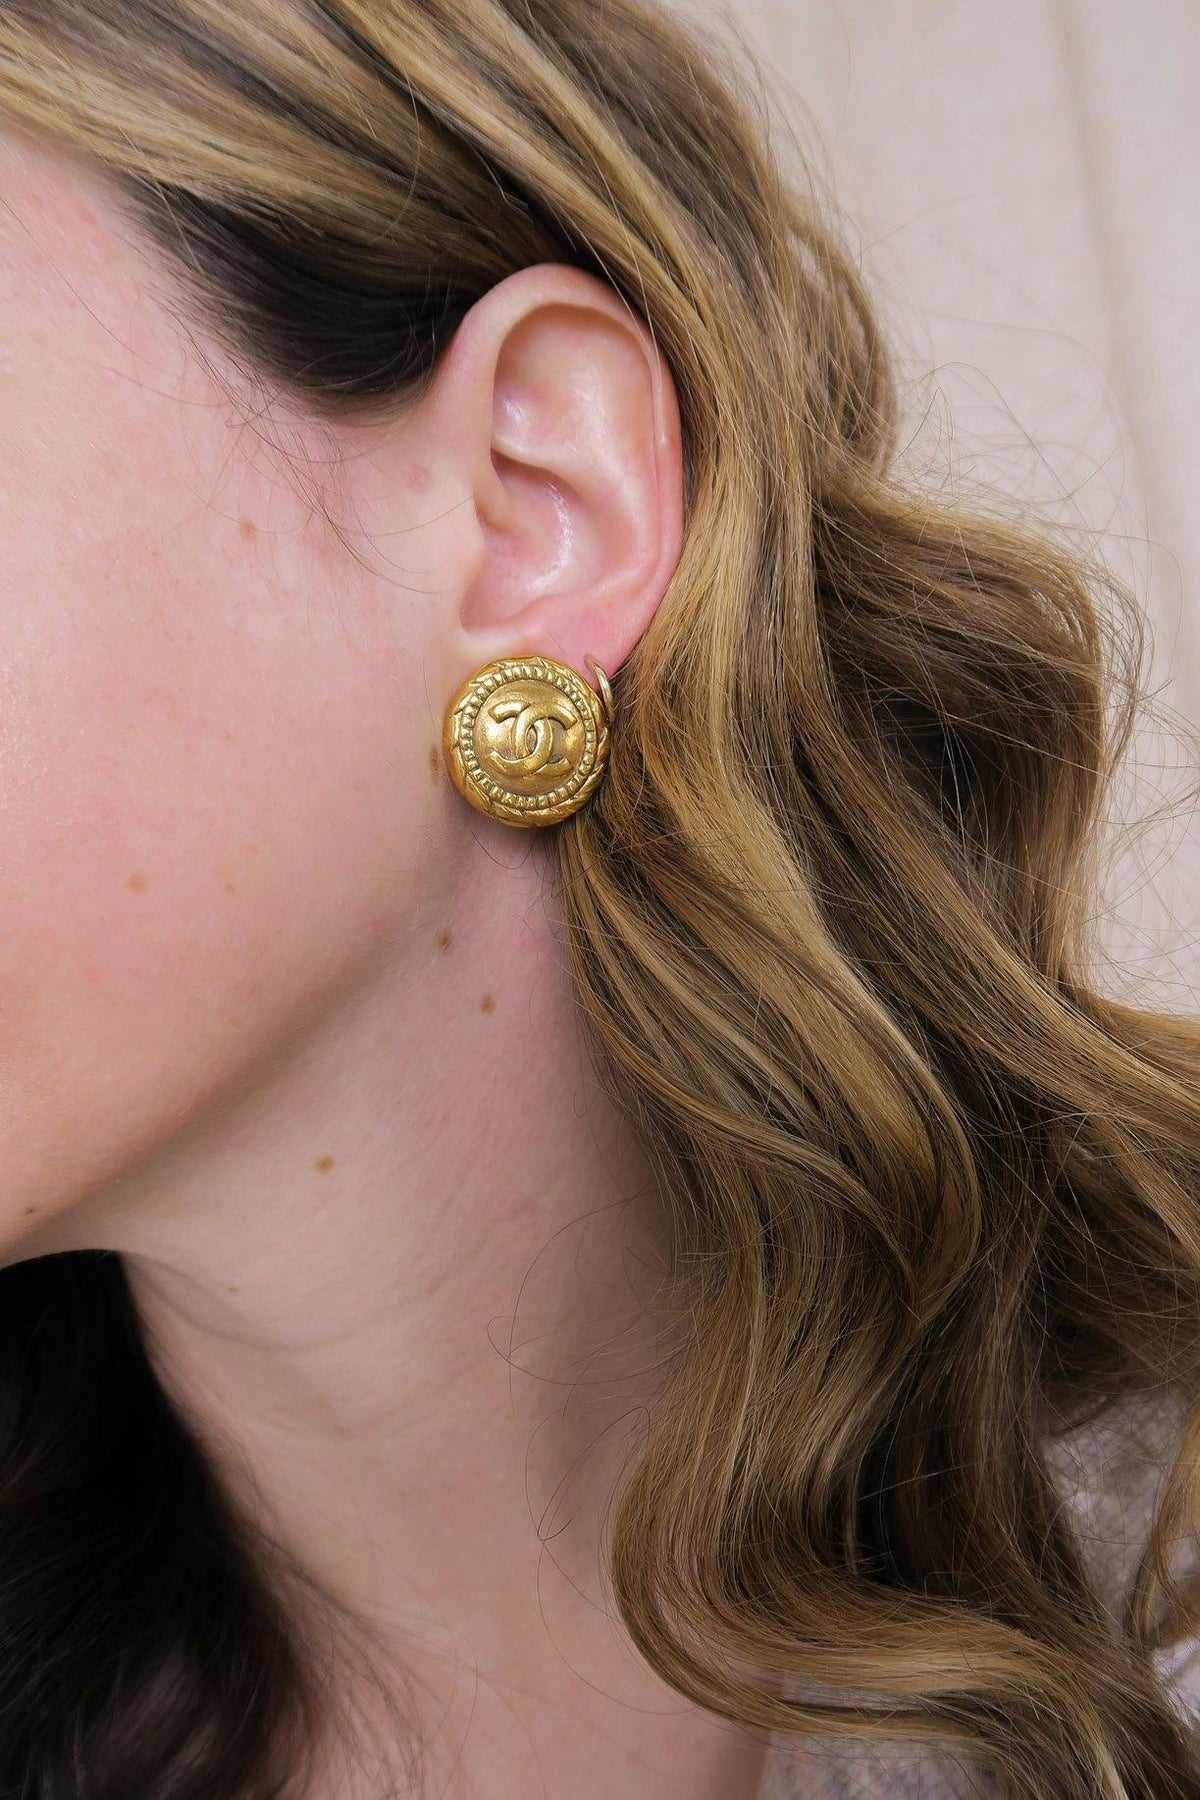 Vintage CC Twisted Rope Clip-on Coin Earrings from Sweet and Spark